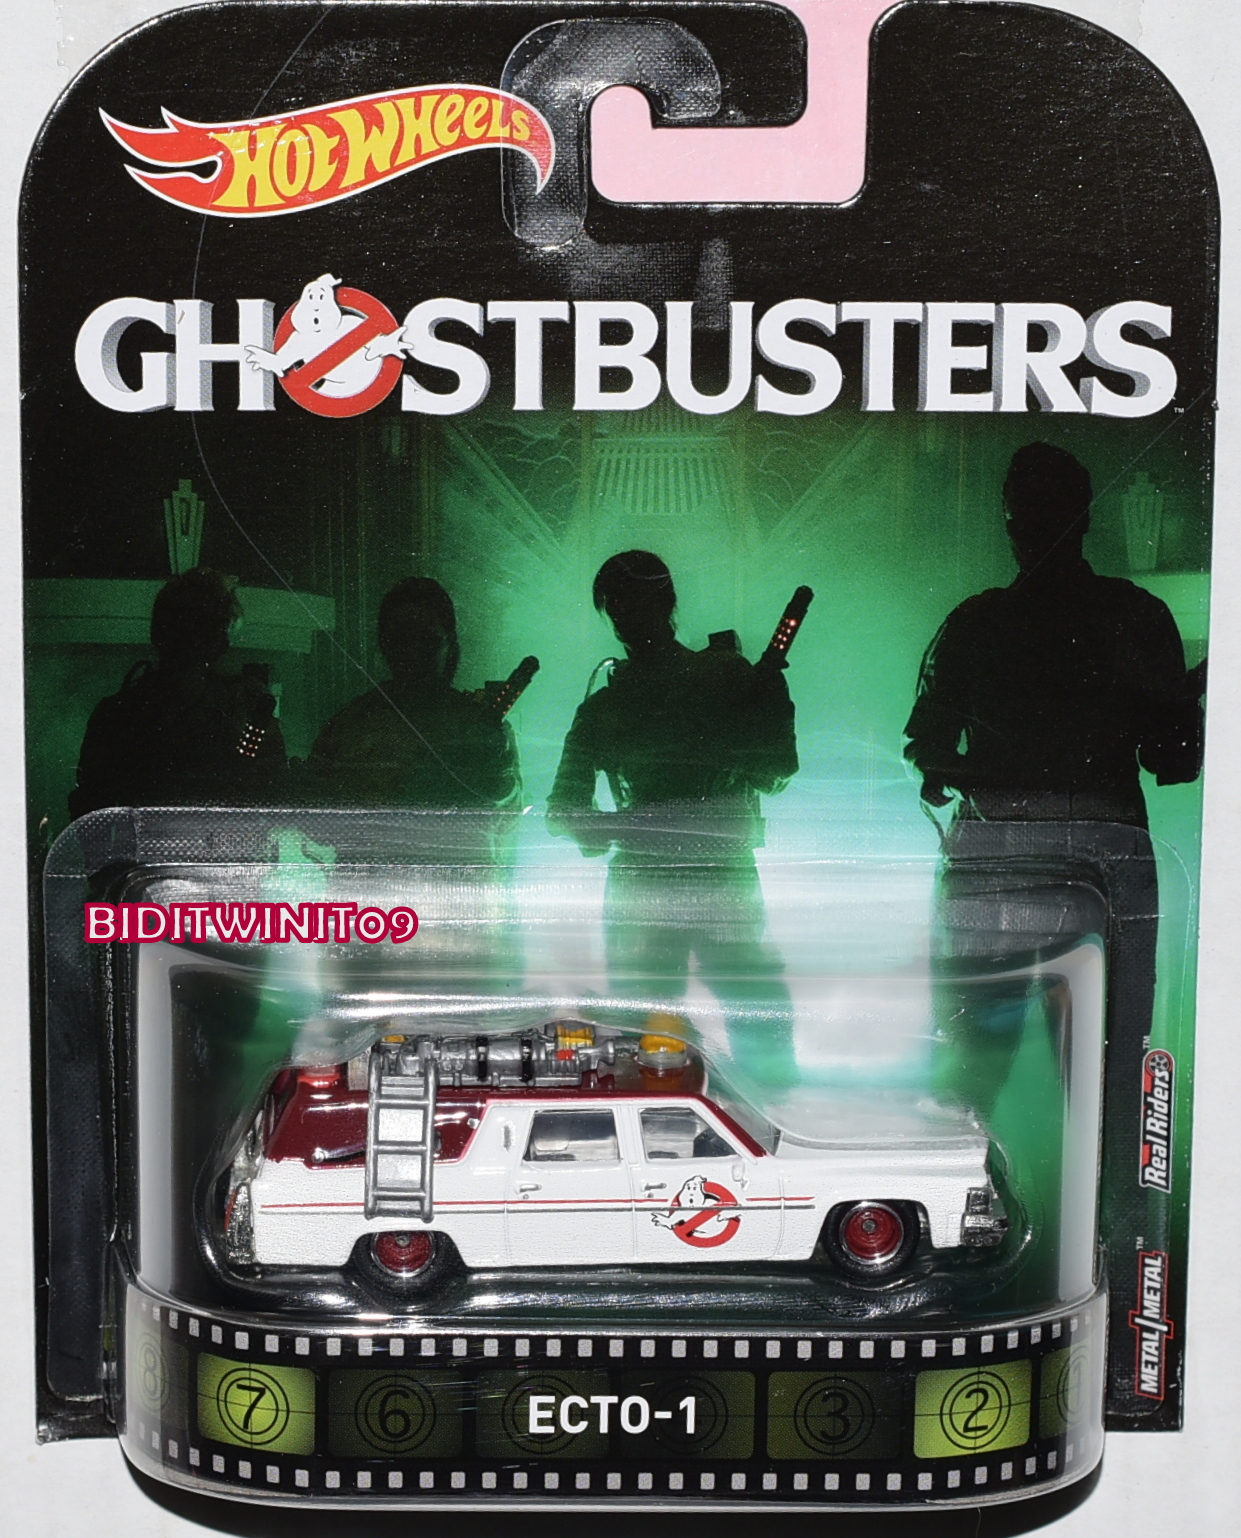 HOT WHEELS RETRO ENTERTAINMENT GHOSTBUSTERS ECTO-1 COMBINE SHIPPING